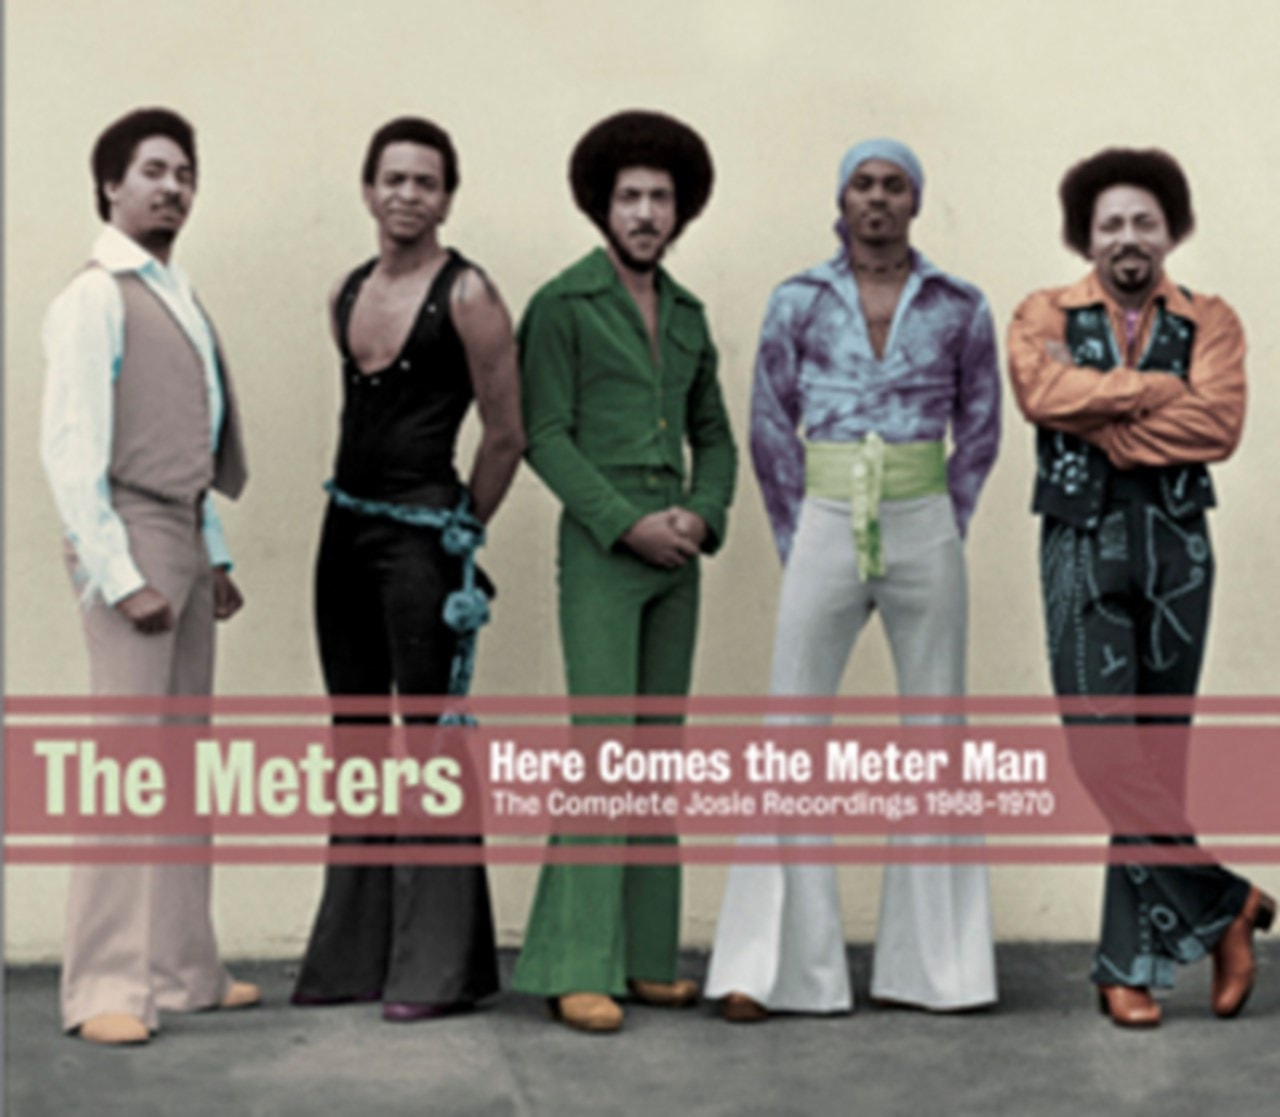 Here Comes the Meter Man: The Complete Josie Recordings 1968-1970 - 1